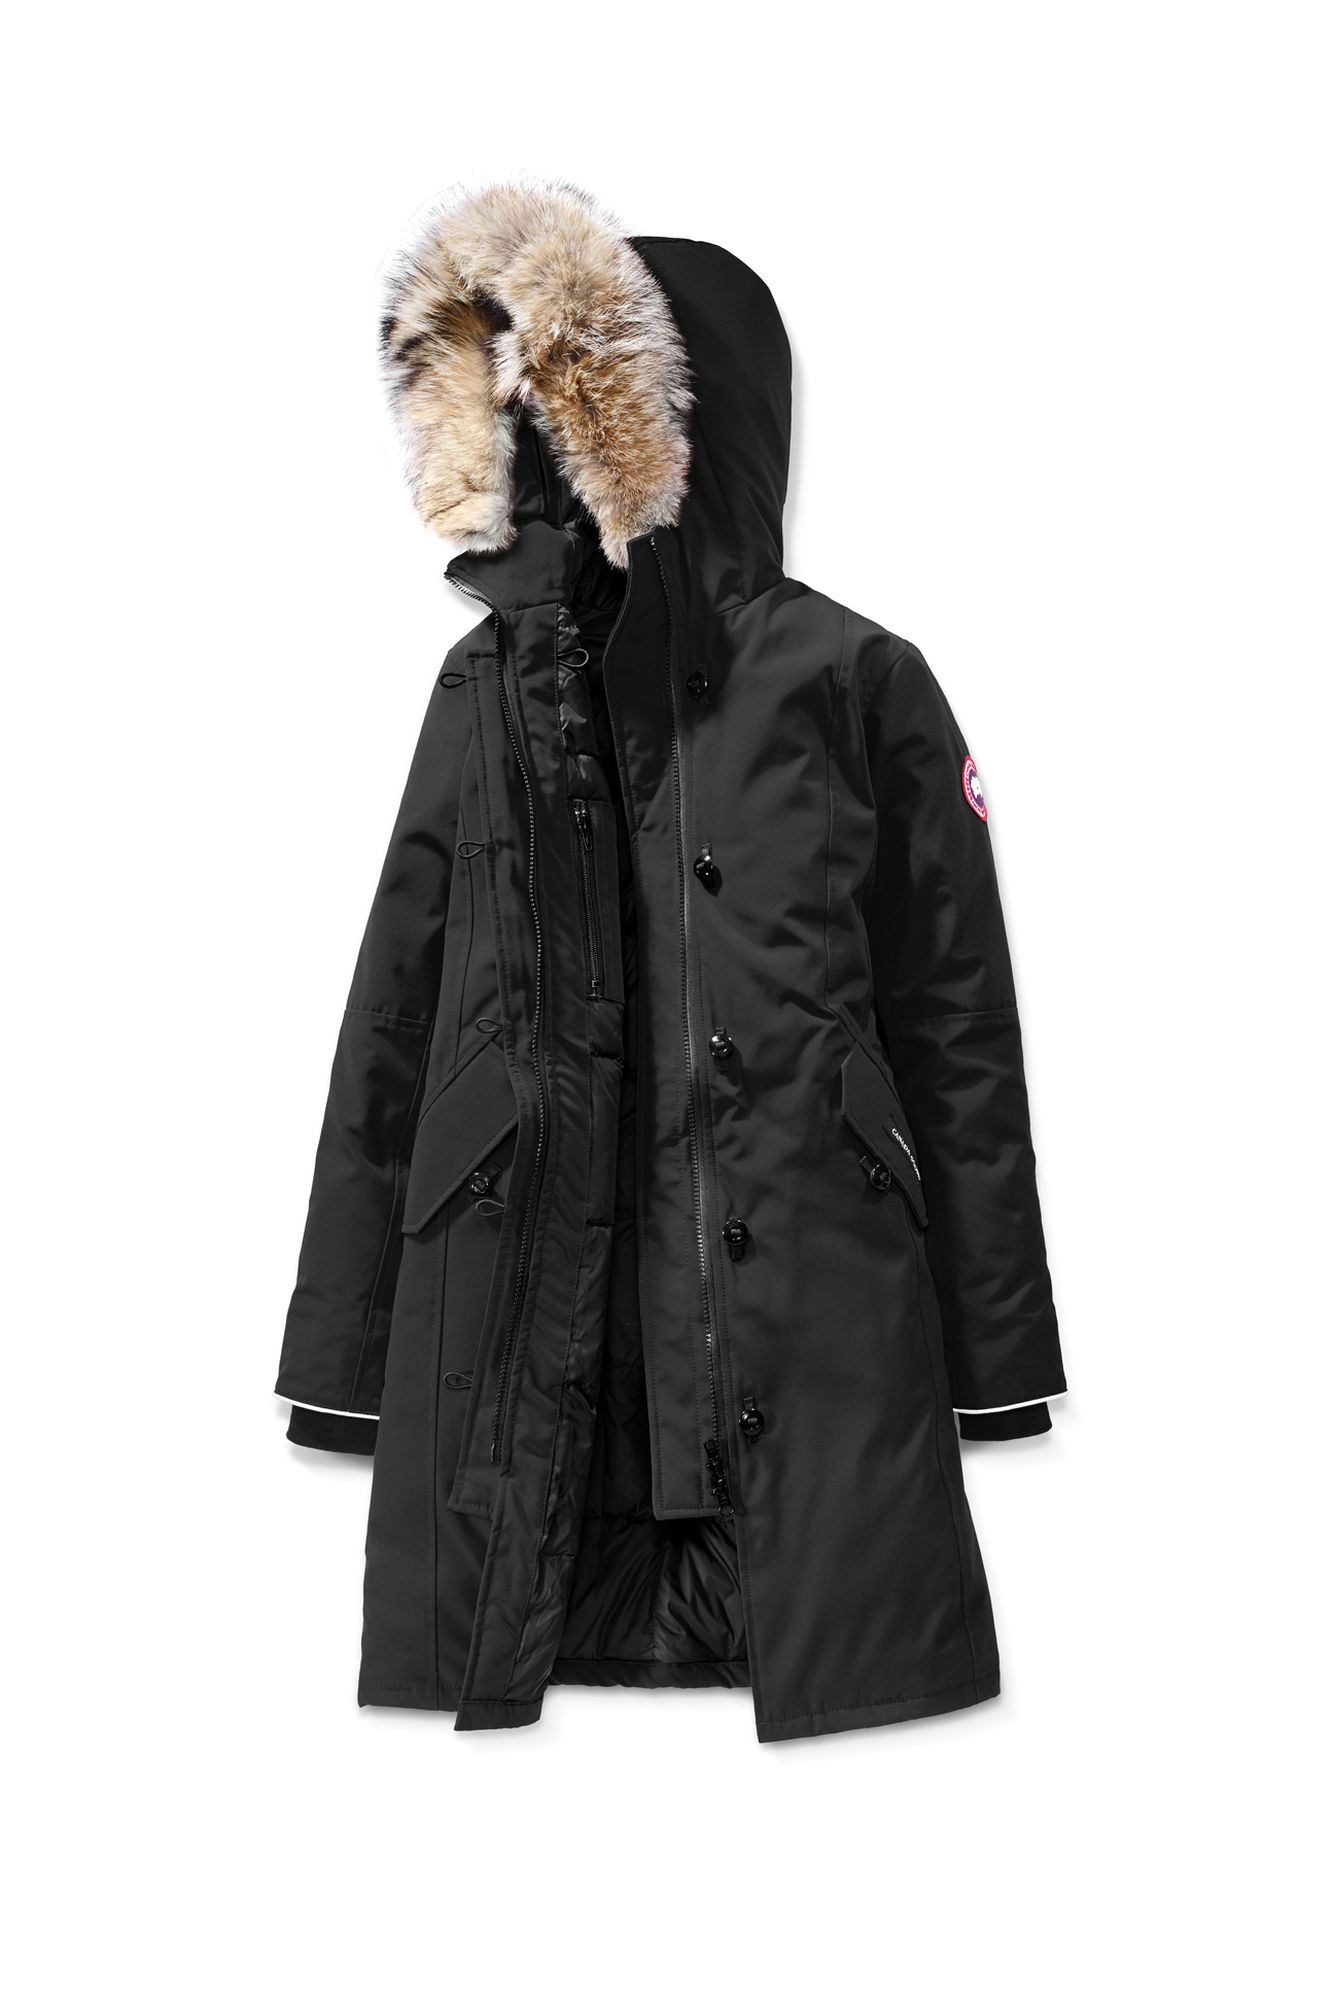 Brittania Parka Canada Goose Try Kids Size M Or L Canadagoose Wintercoat Parka Parka Canada Goose Canada Goose Parka